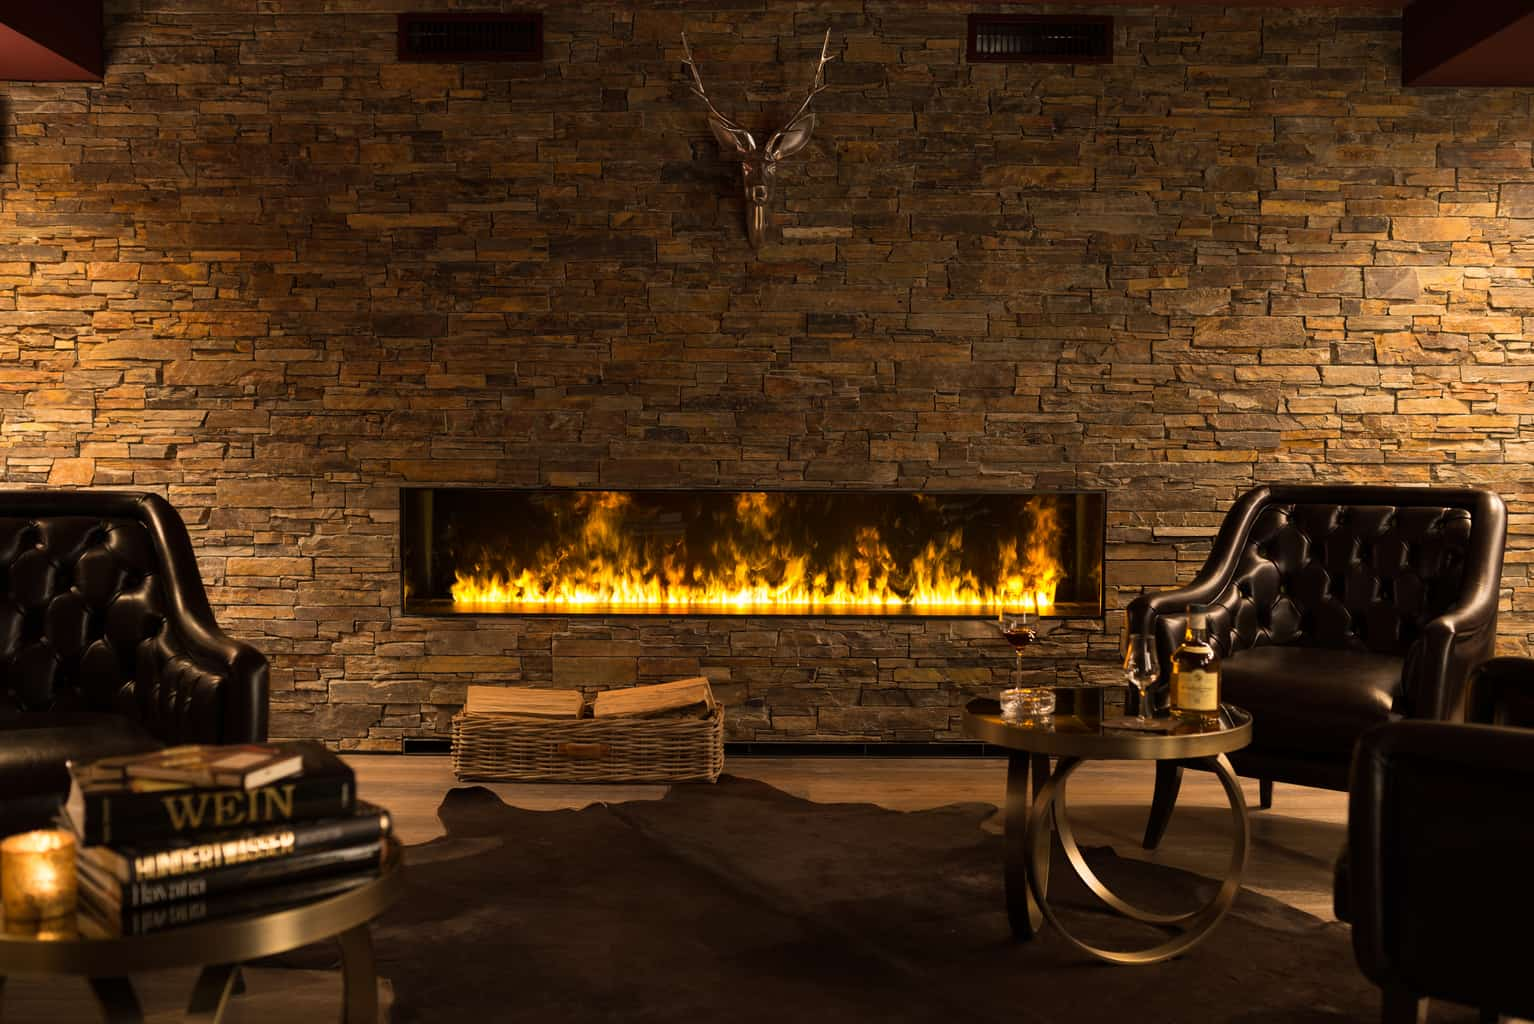 Roaring fireplace and cozy arm chair at peaks place